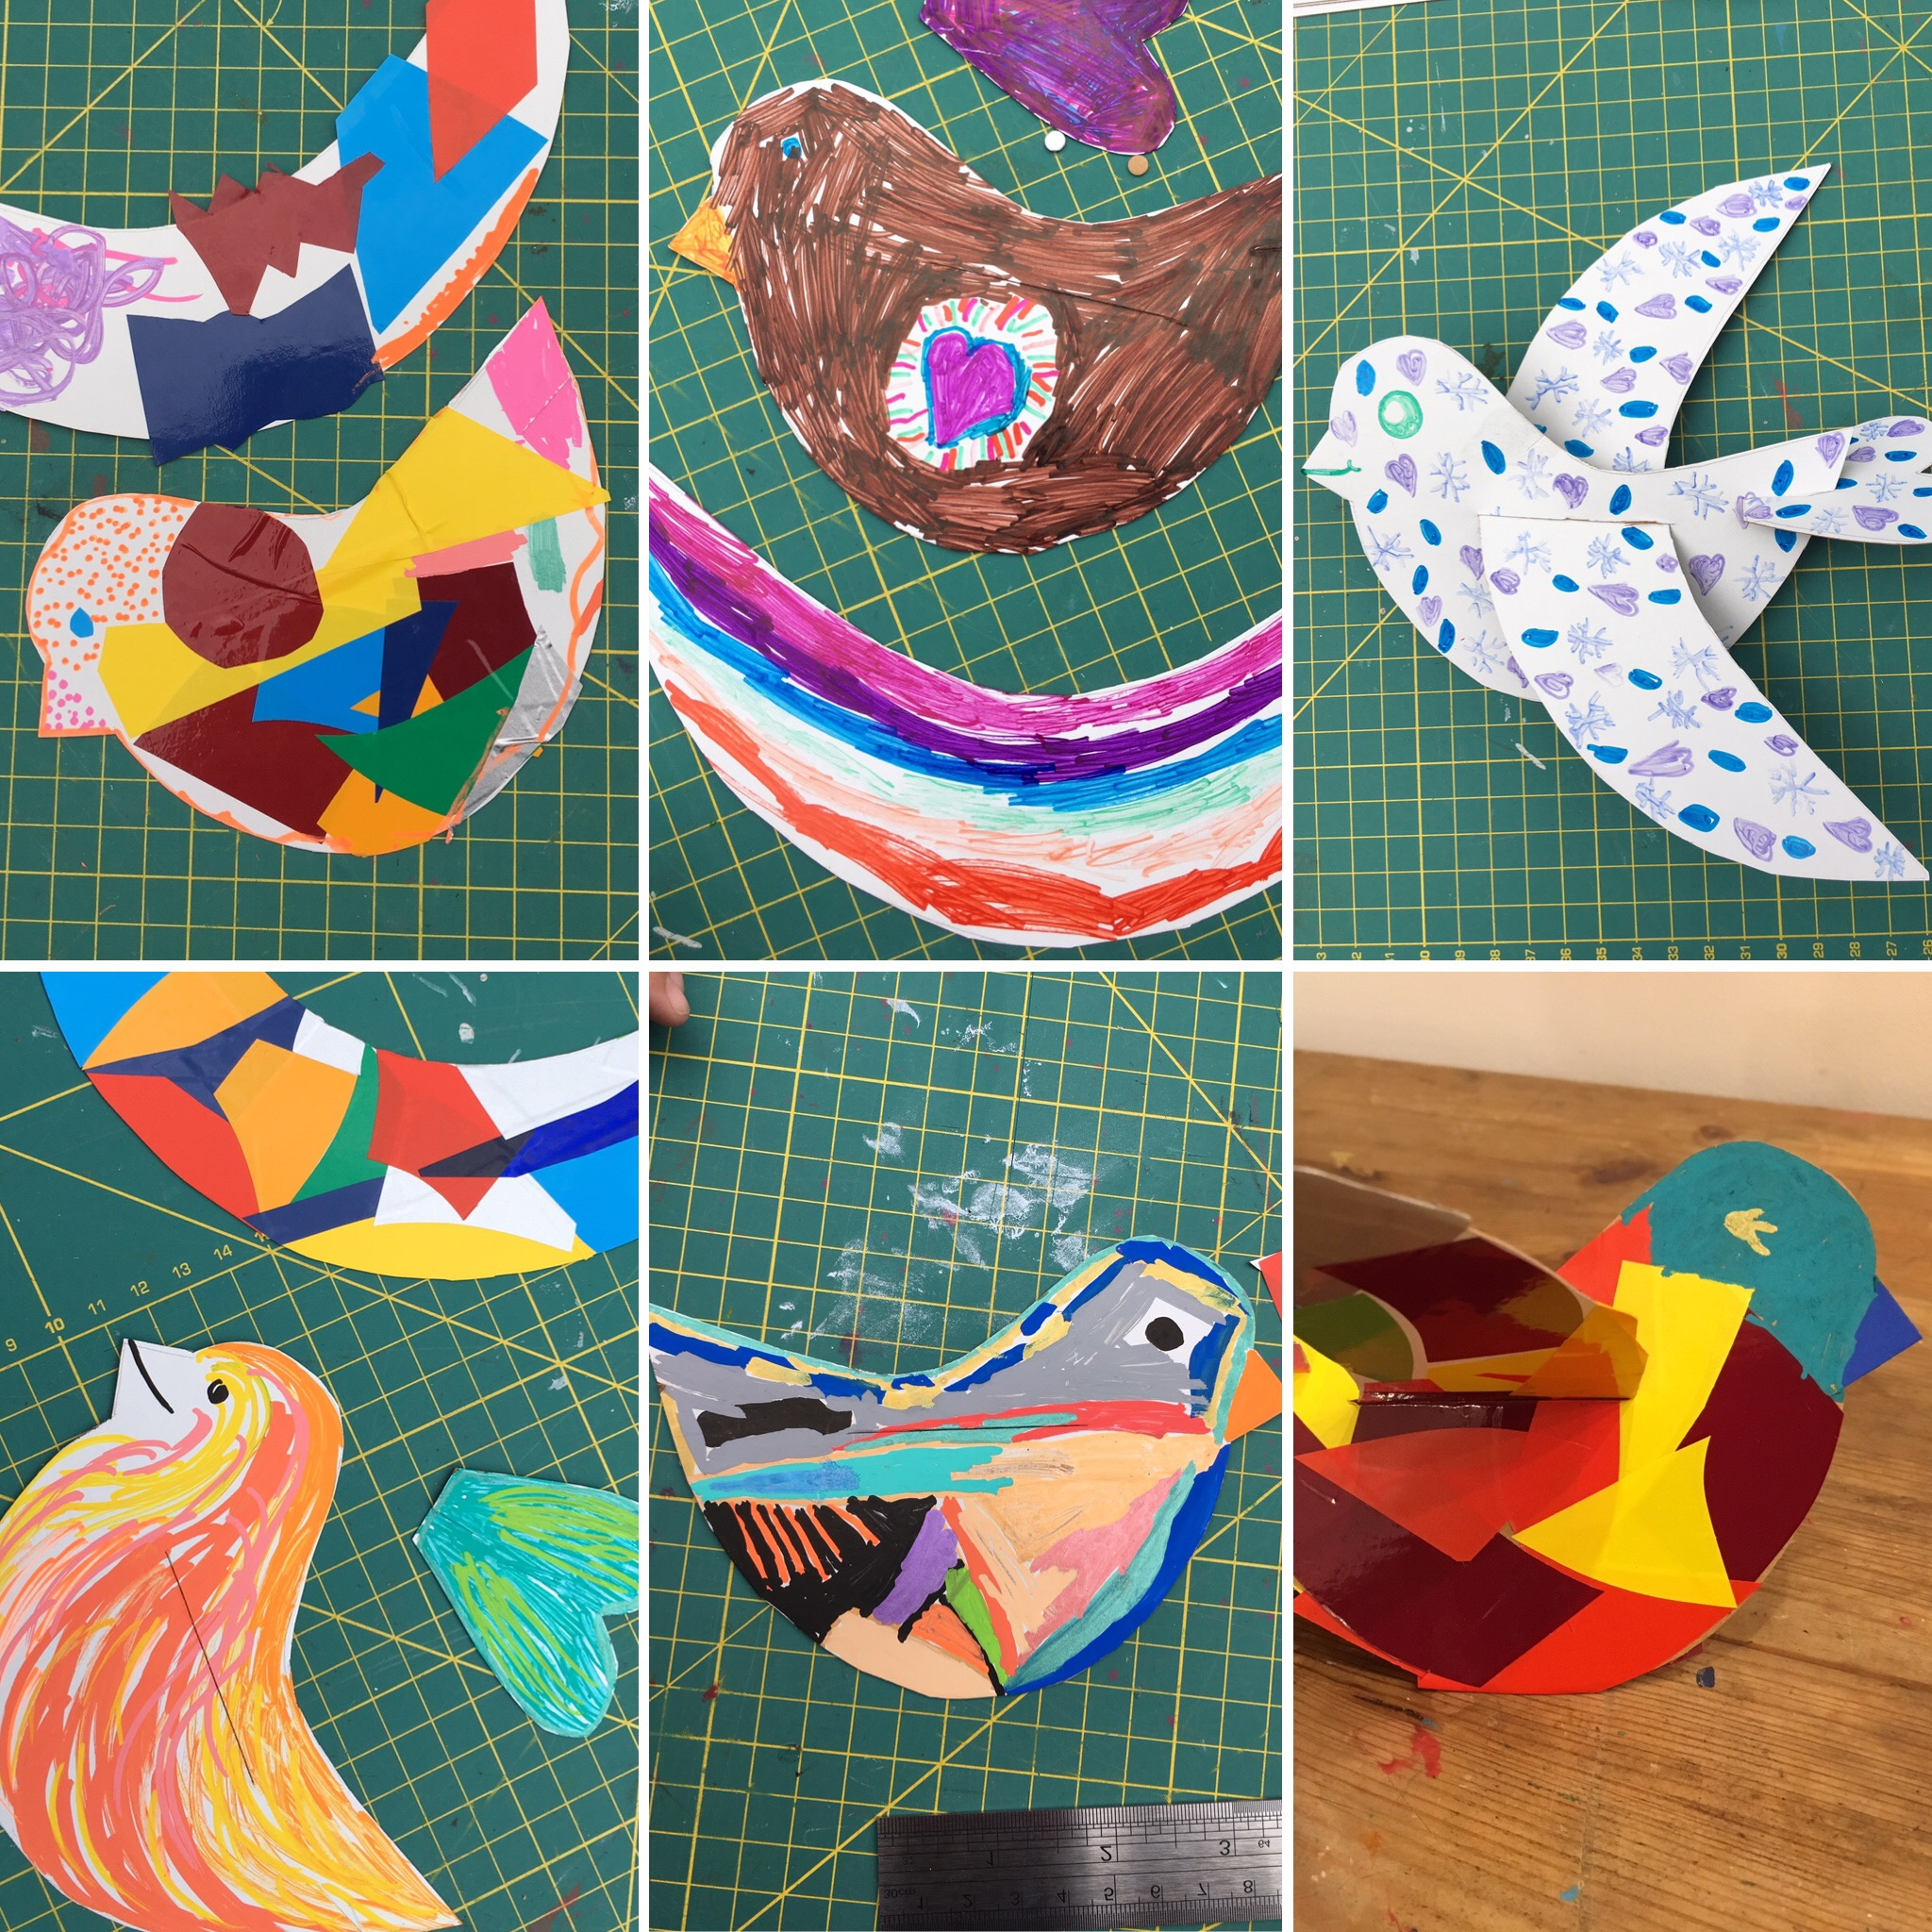 Chandos Rd Festival - We had a brilliant arty day making and flying birds - so many people stopped to create with us. We made lots of new friends, and not just the feathered kind...